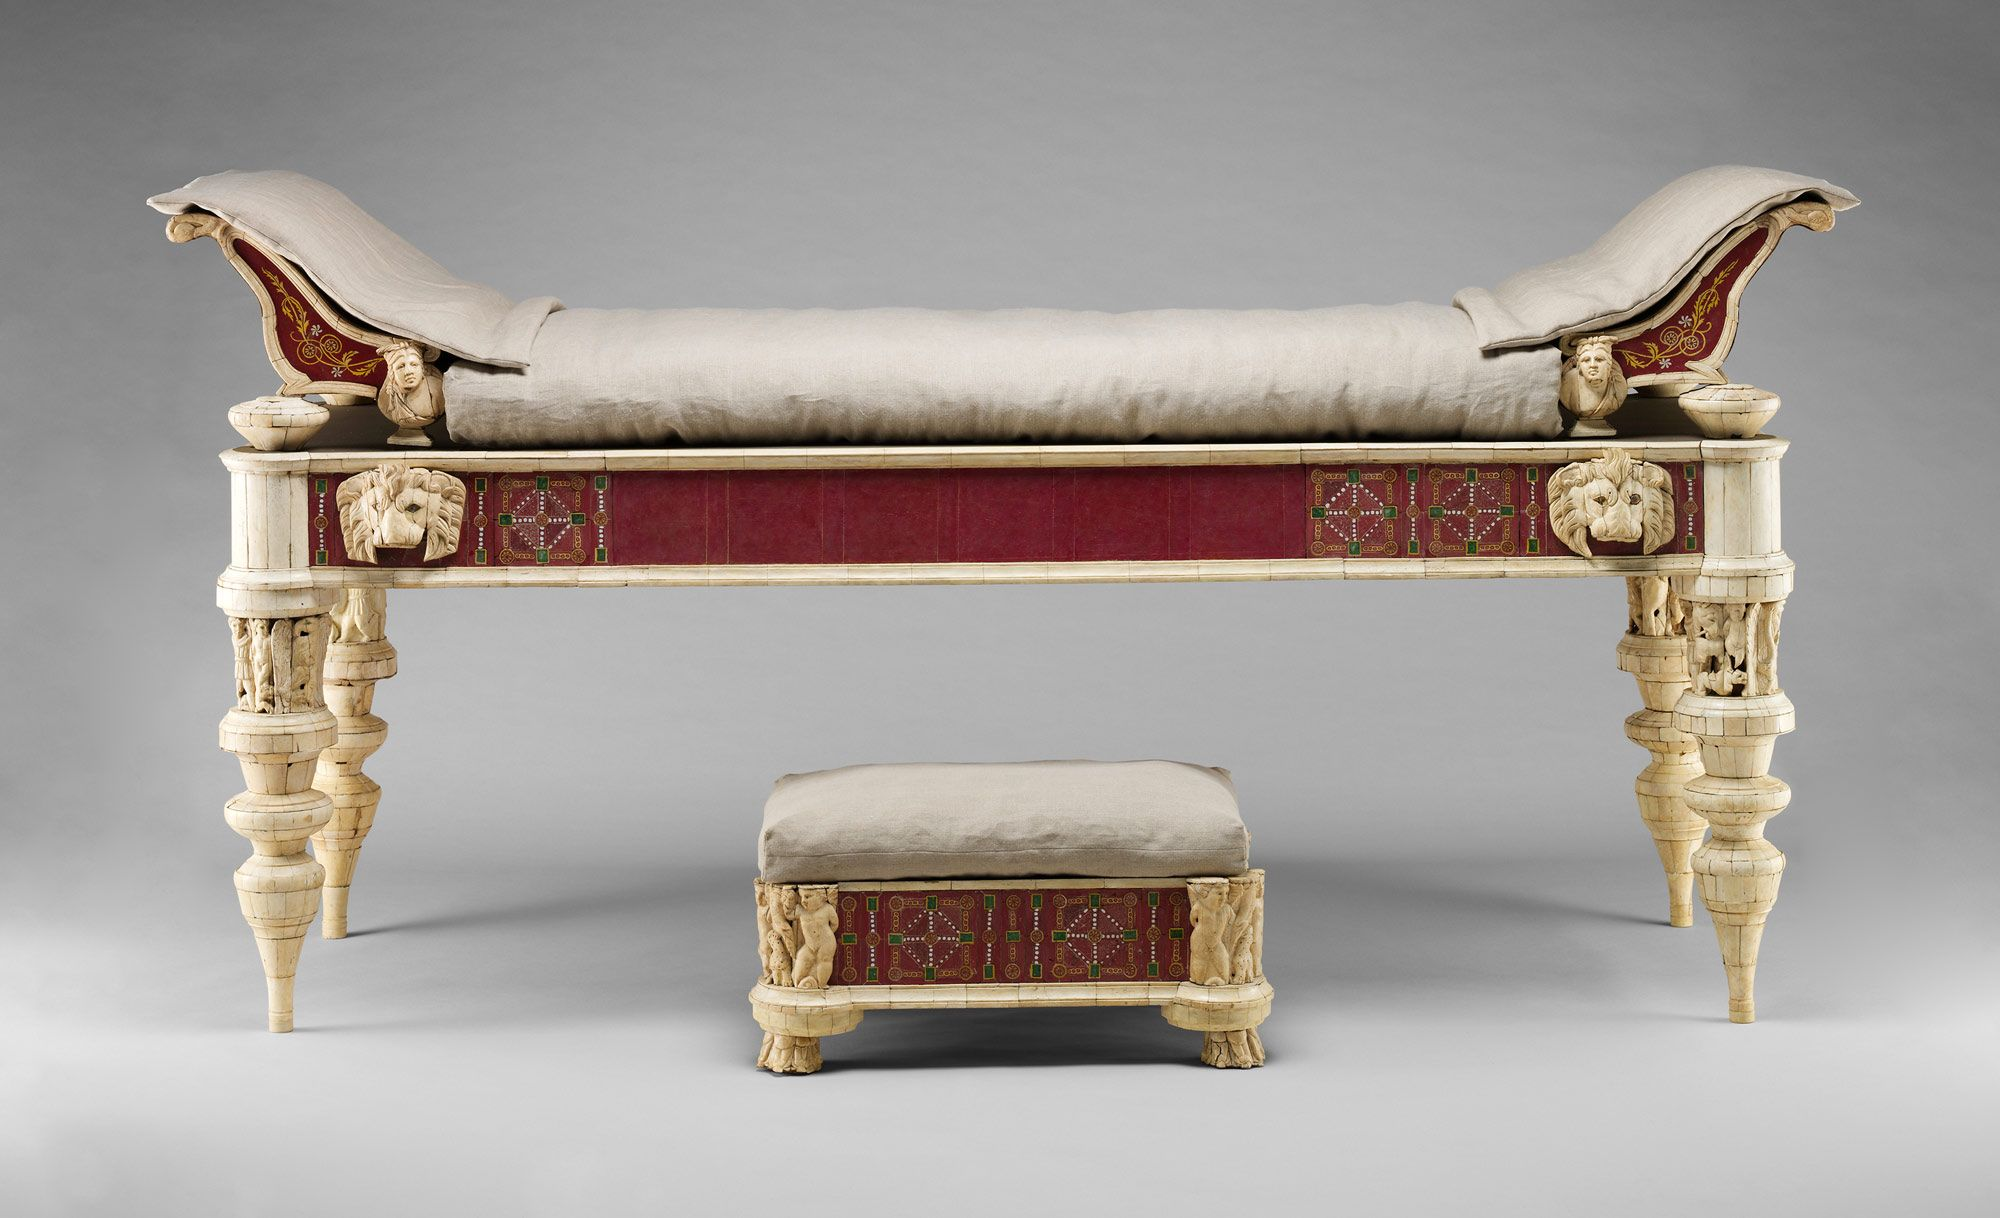 Roman Housing Ancient Rome Artifacts Sofa Bench Lectus Bed With Footstool Bone Carvings And Glass Inlays Regal